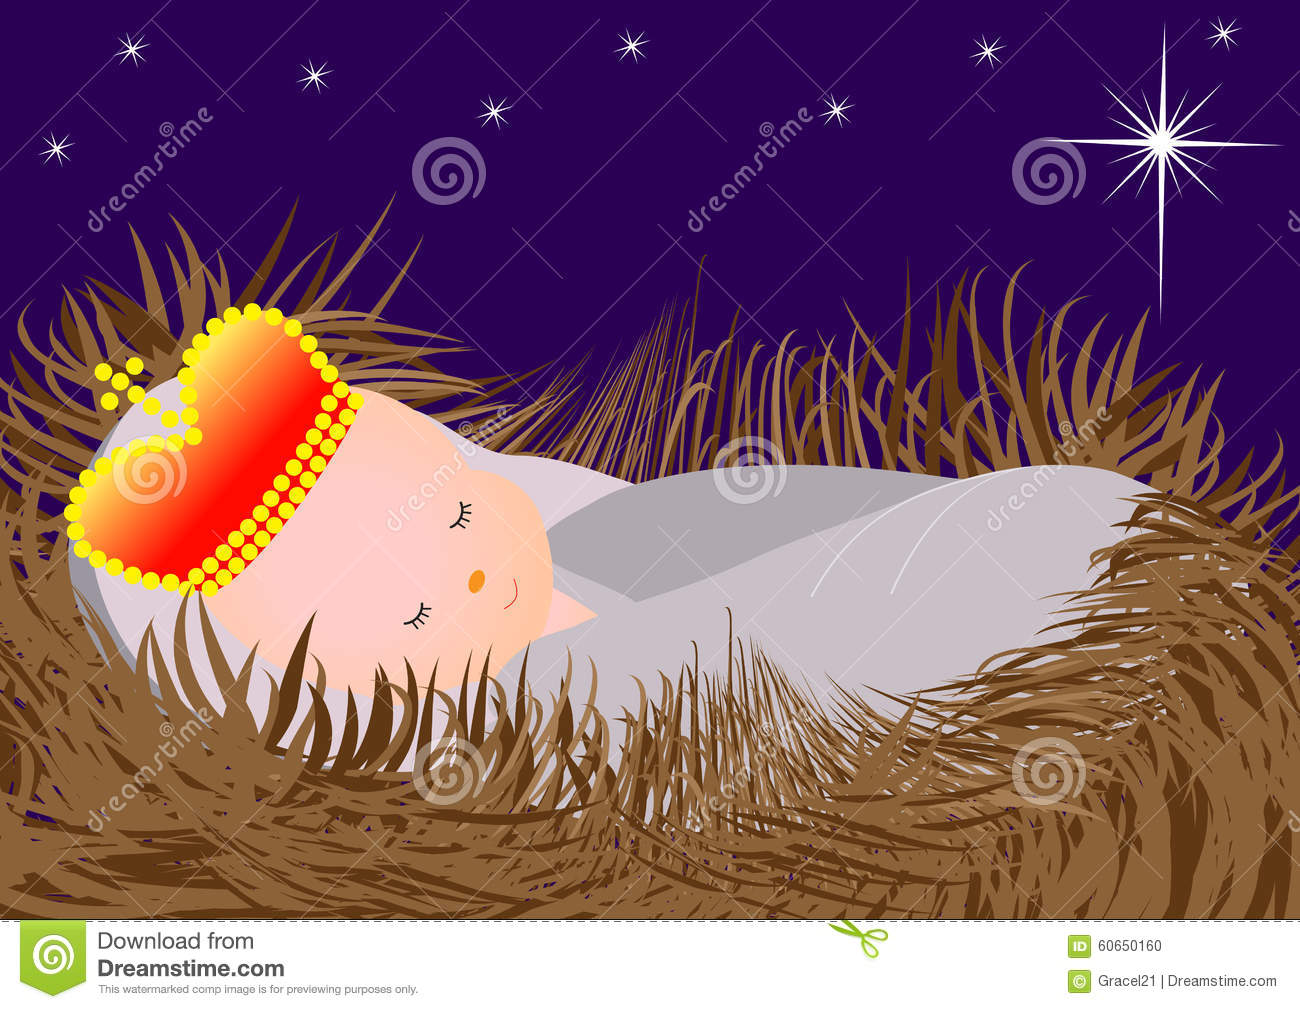 Baby Jesus in the manger stock vector. Image of child ...   1300 x 1009 jpeg 192kB